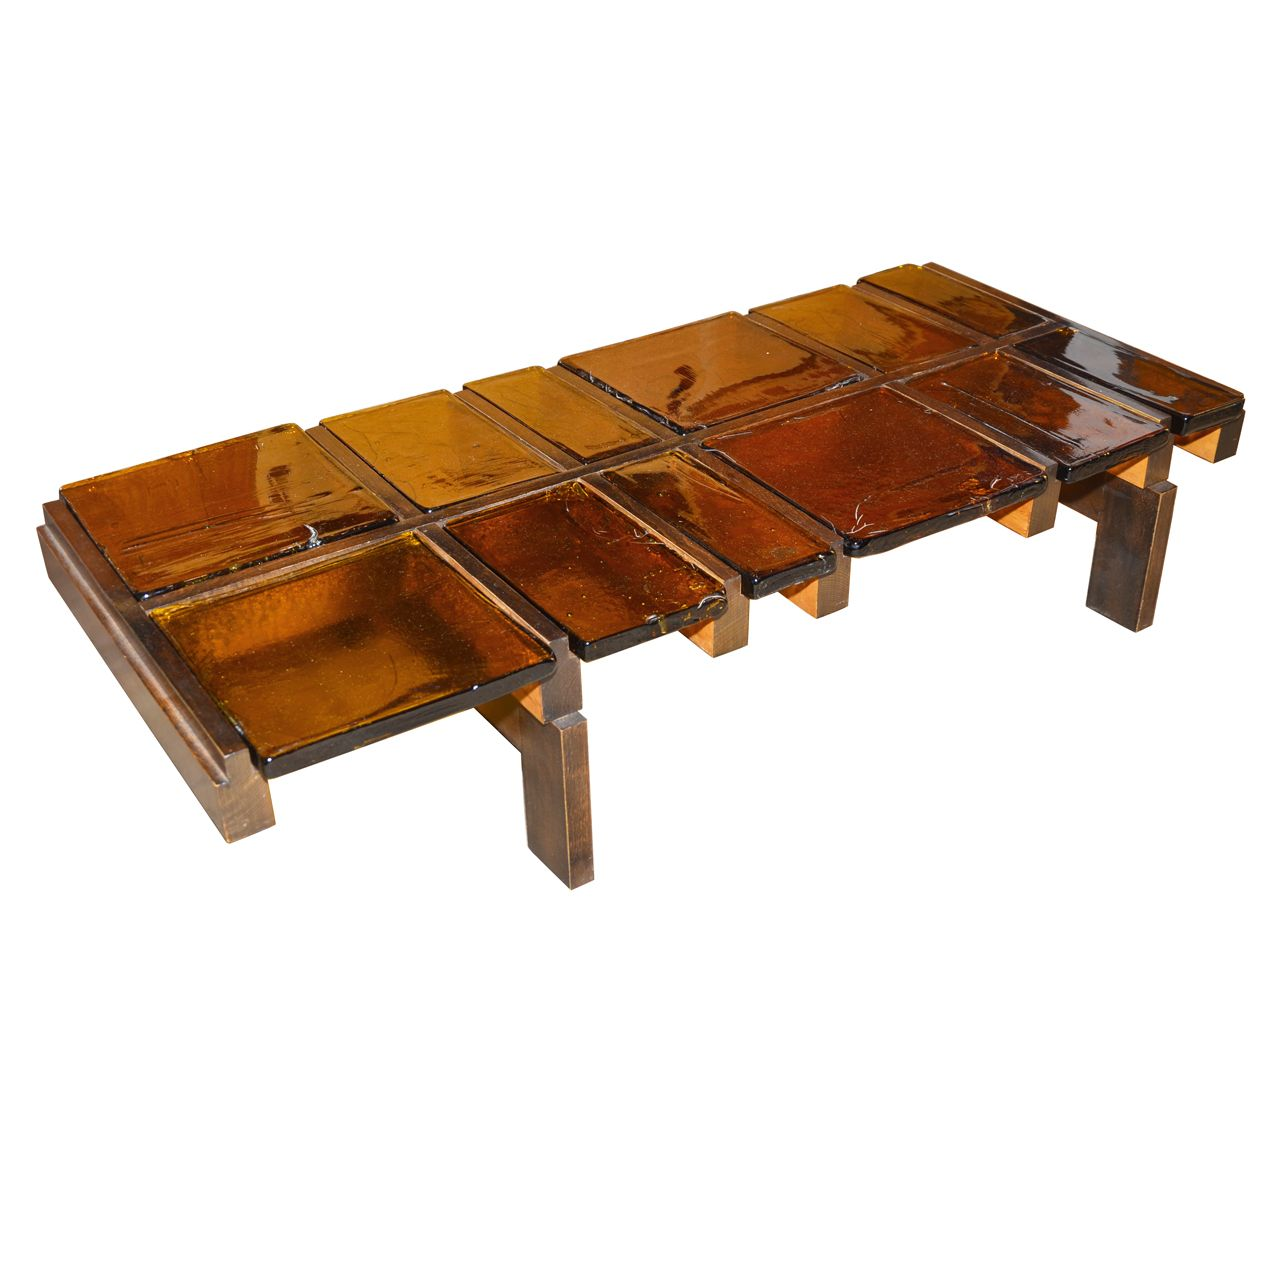 1970s Coffee Table By Roger Capron Vallauris At 1stdibs Avec Images Vallauris Tapis Design